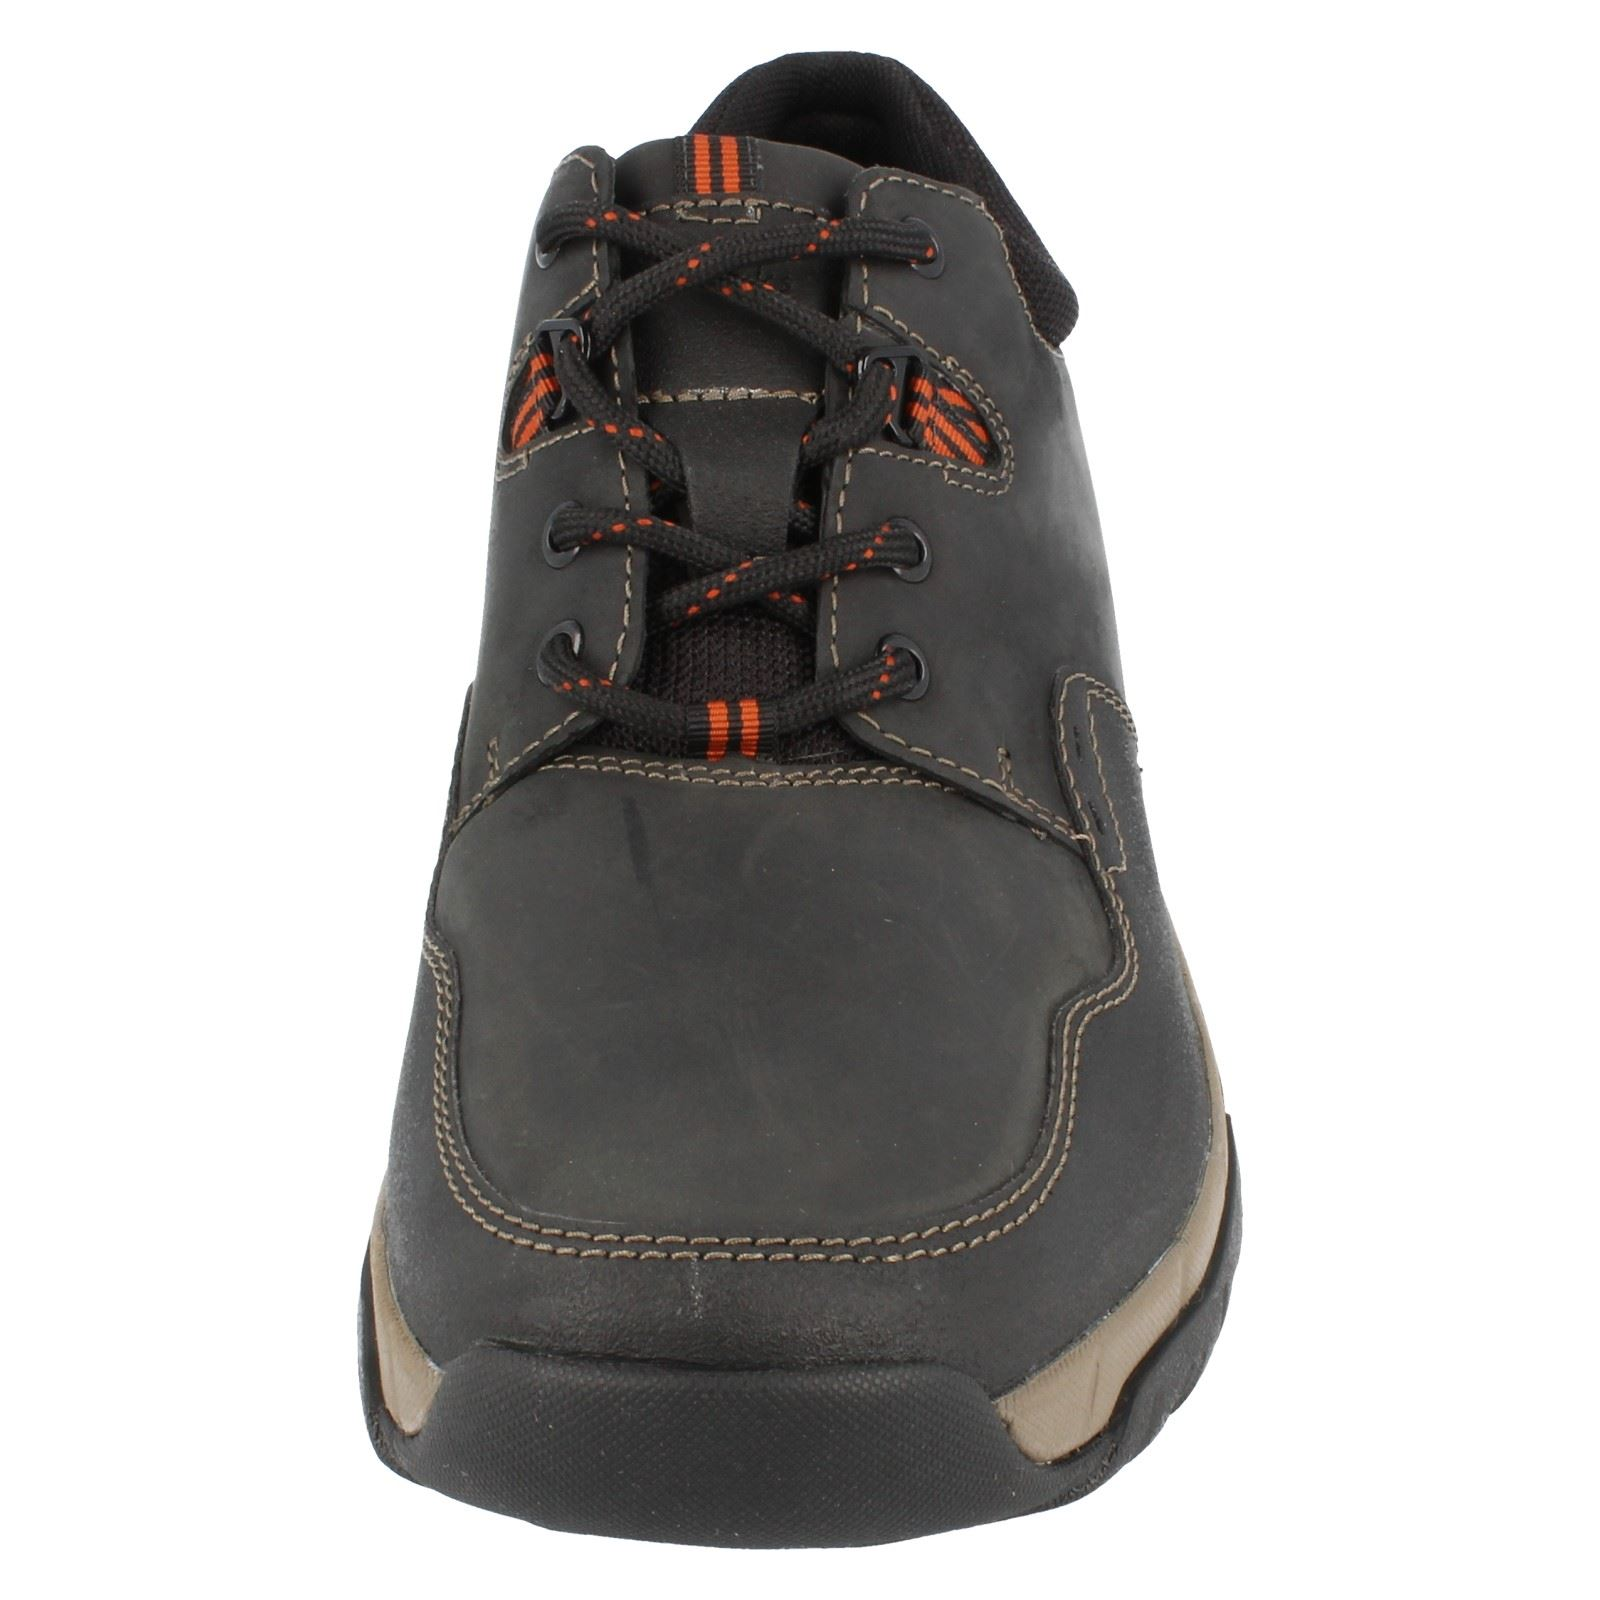 Schuhes Uomo Clarks Lace up Schuhes  Walbeck Edge c100b0